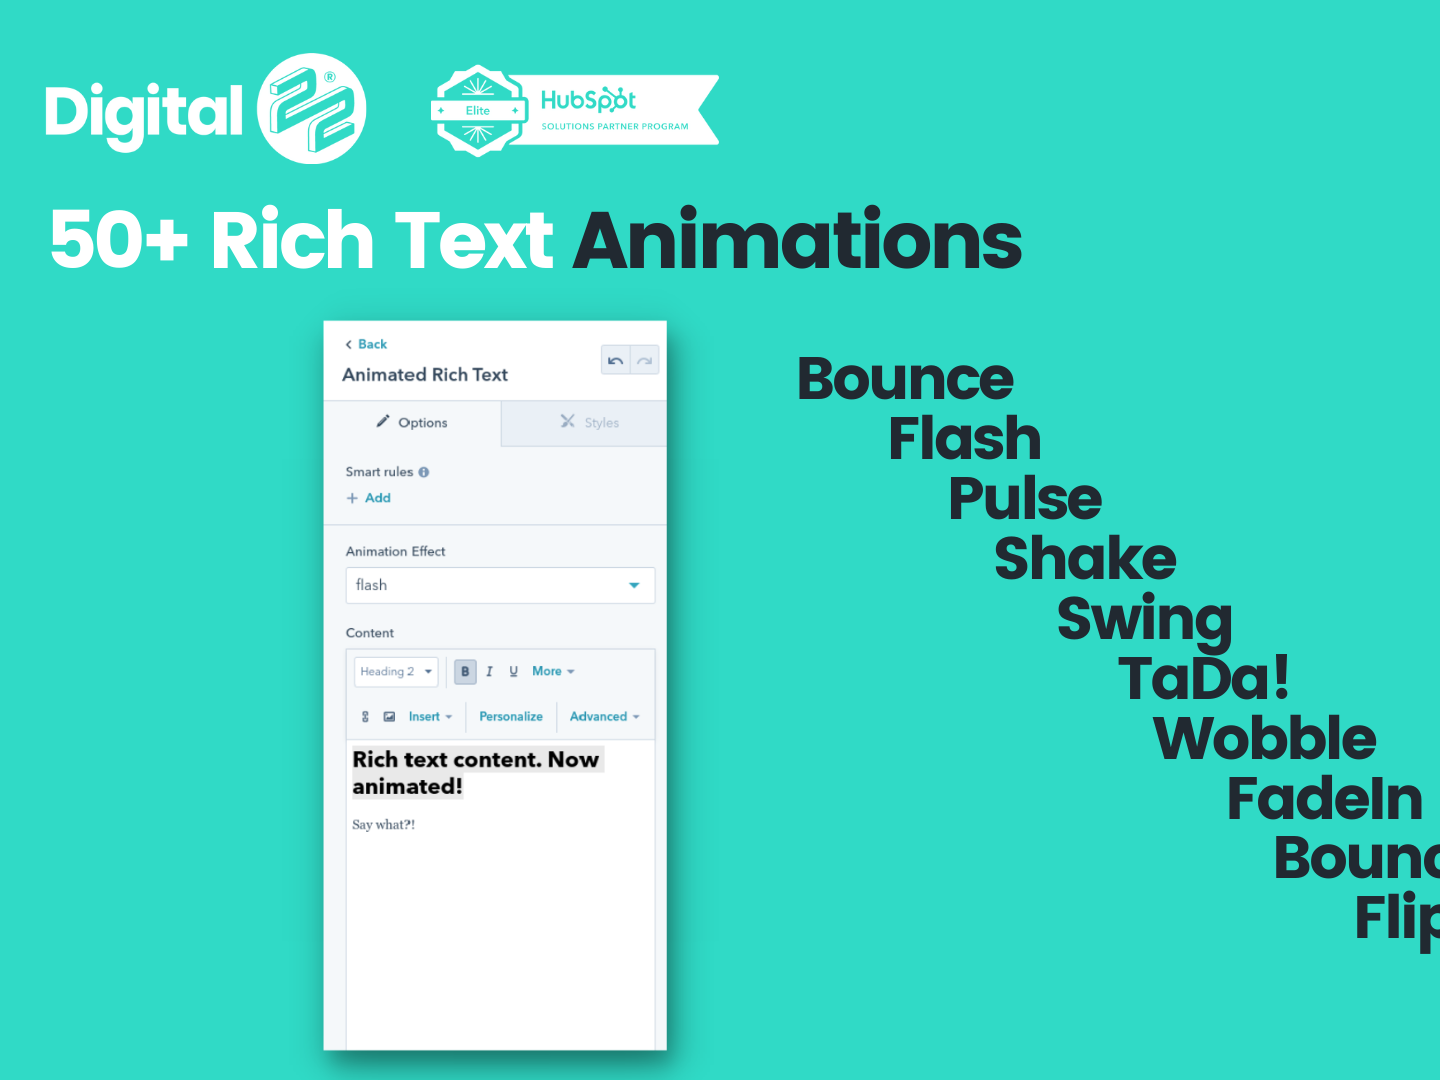 Animated Rich Text